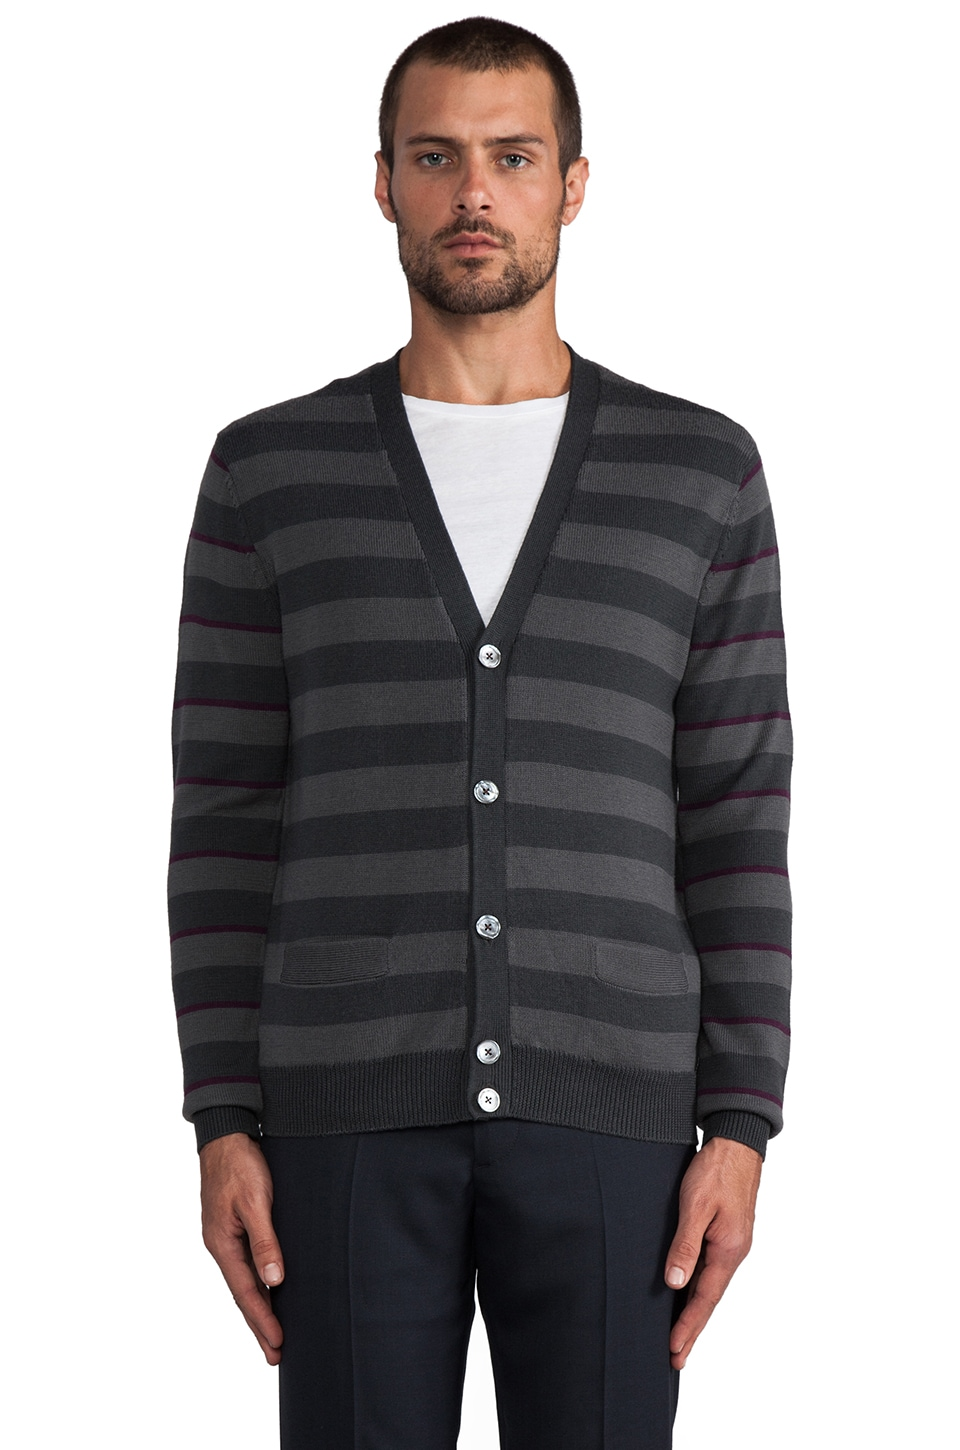 Marc by Marc Jacobs Yukon Stripe Cardigan in Jet Set Multi